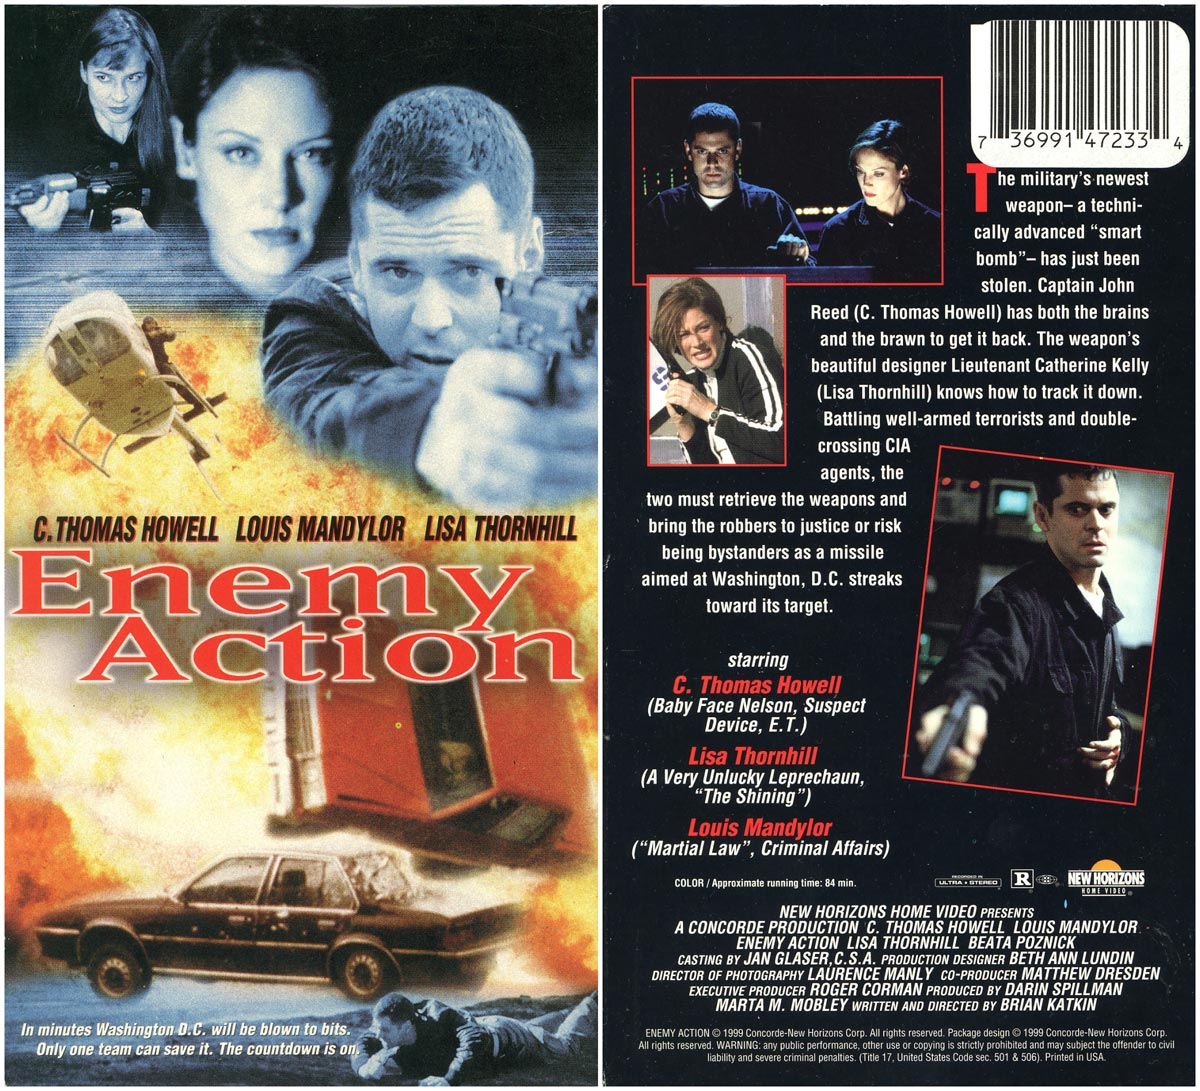 http://thenewbev.com/wp-content/uploads/2017/03/Enemy-Action-VHS.jpg